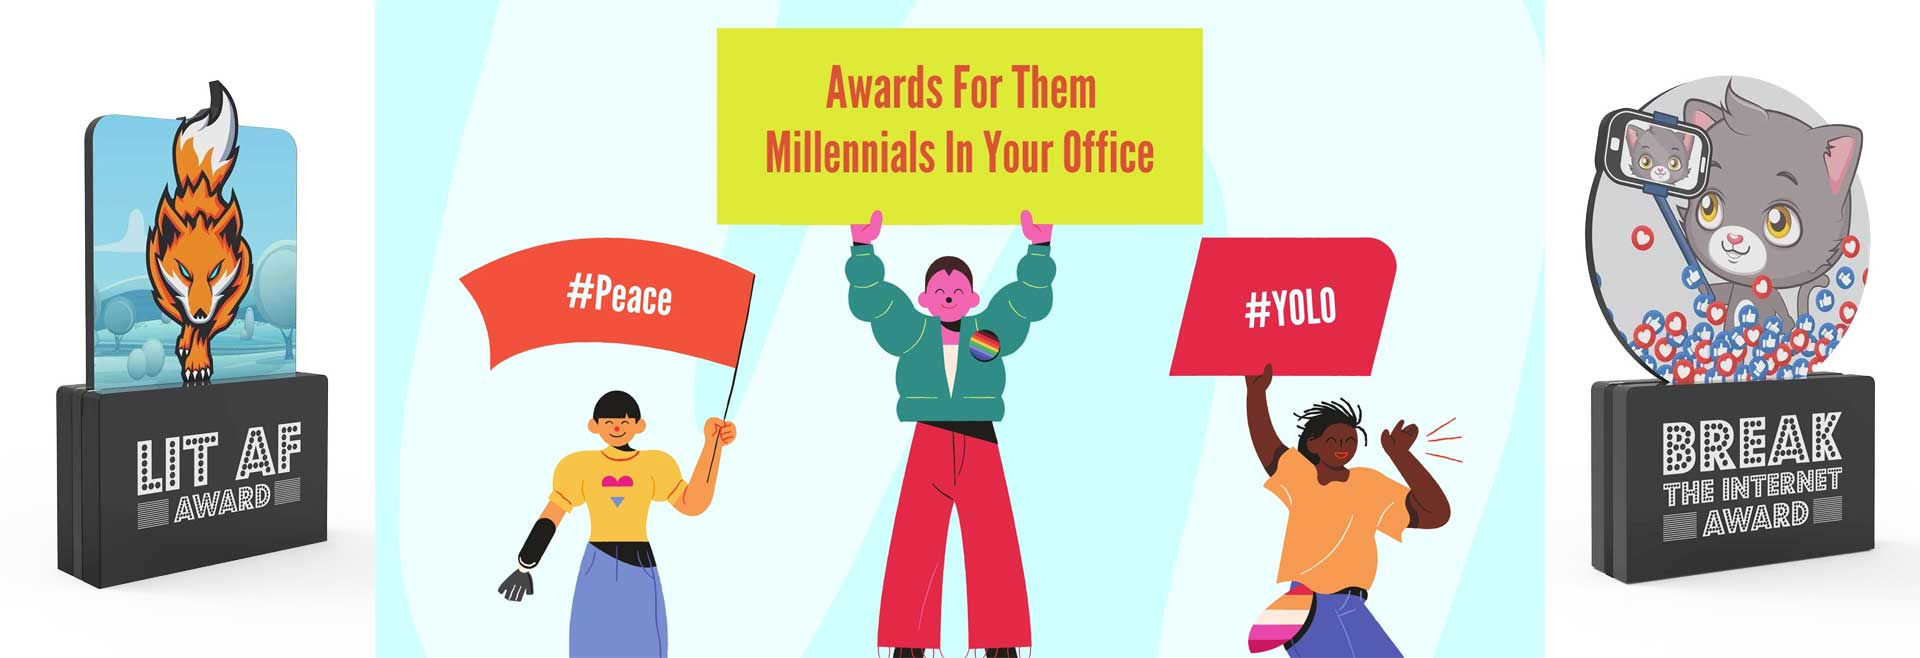 Fun Awards for Millennials in the Workplace